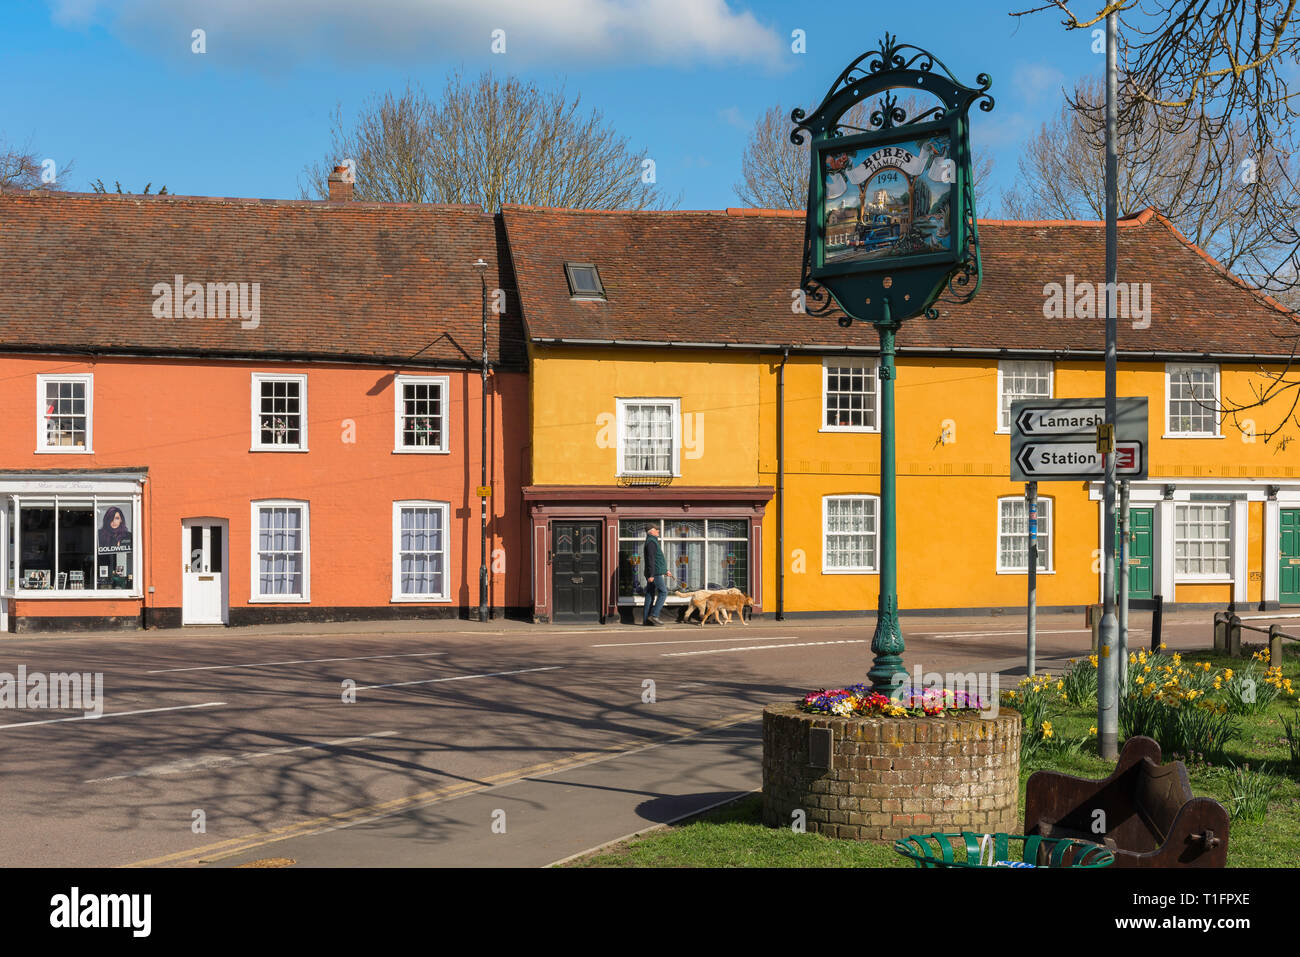 Bures UK, view of colourful houses in Bridge Street in Bures Hamlet on the Essex side of the village of Bures (Suffolk) England, UK. - Stock Image